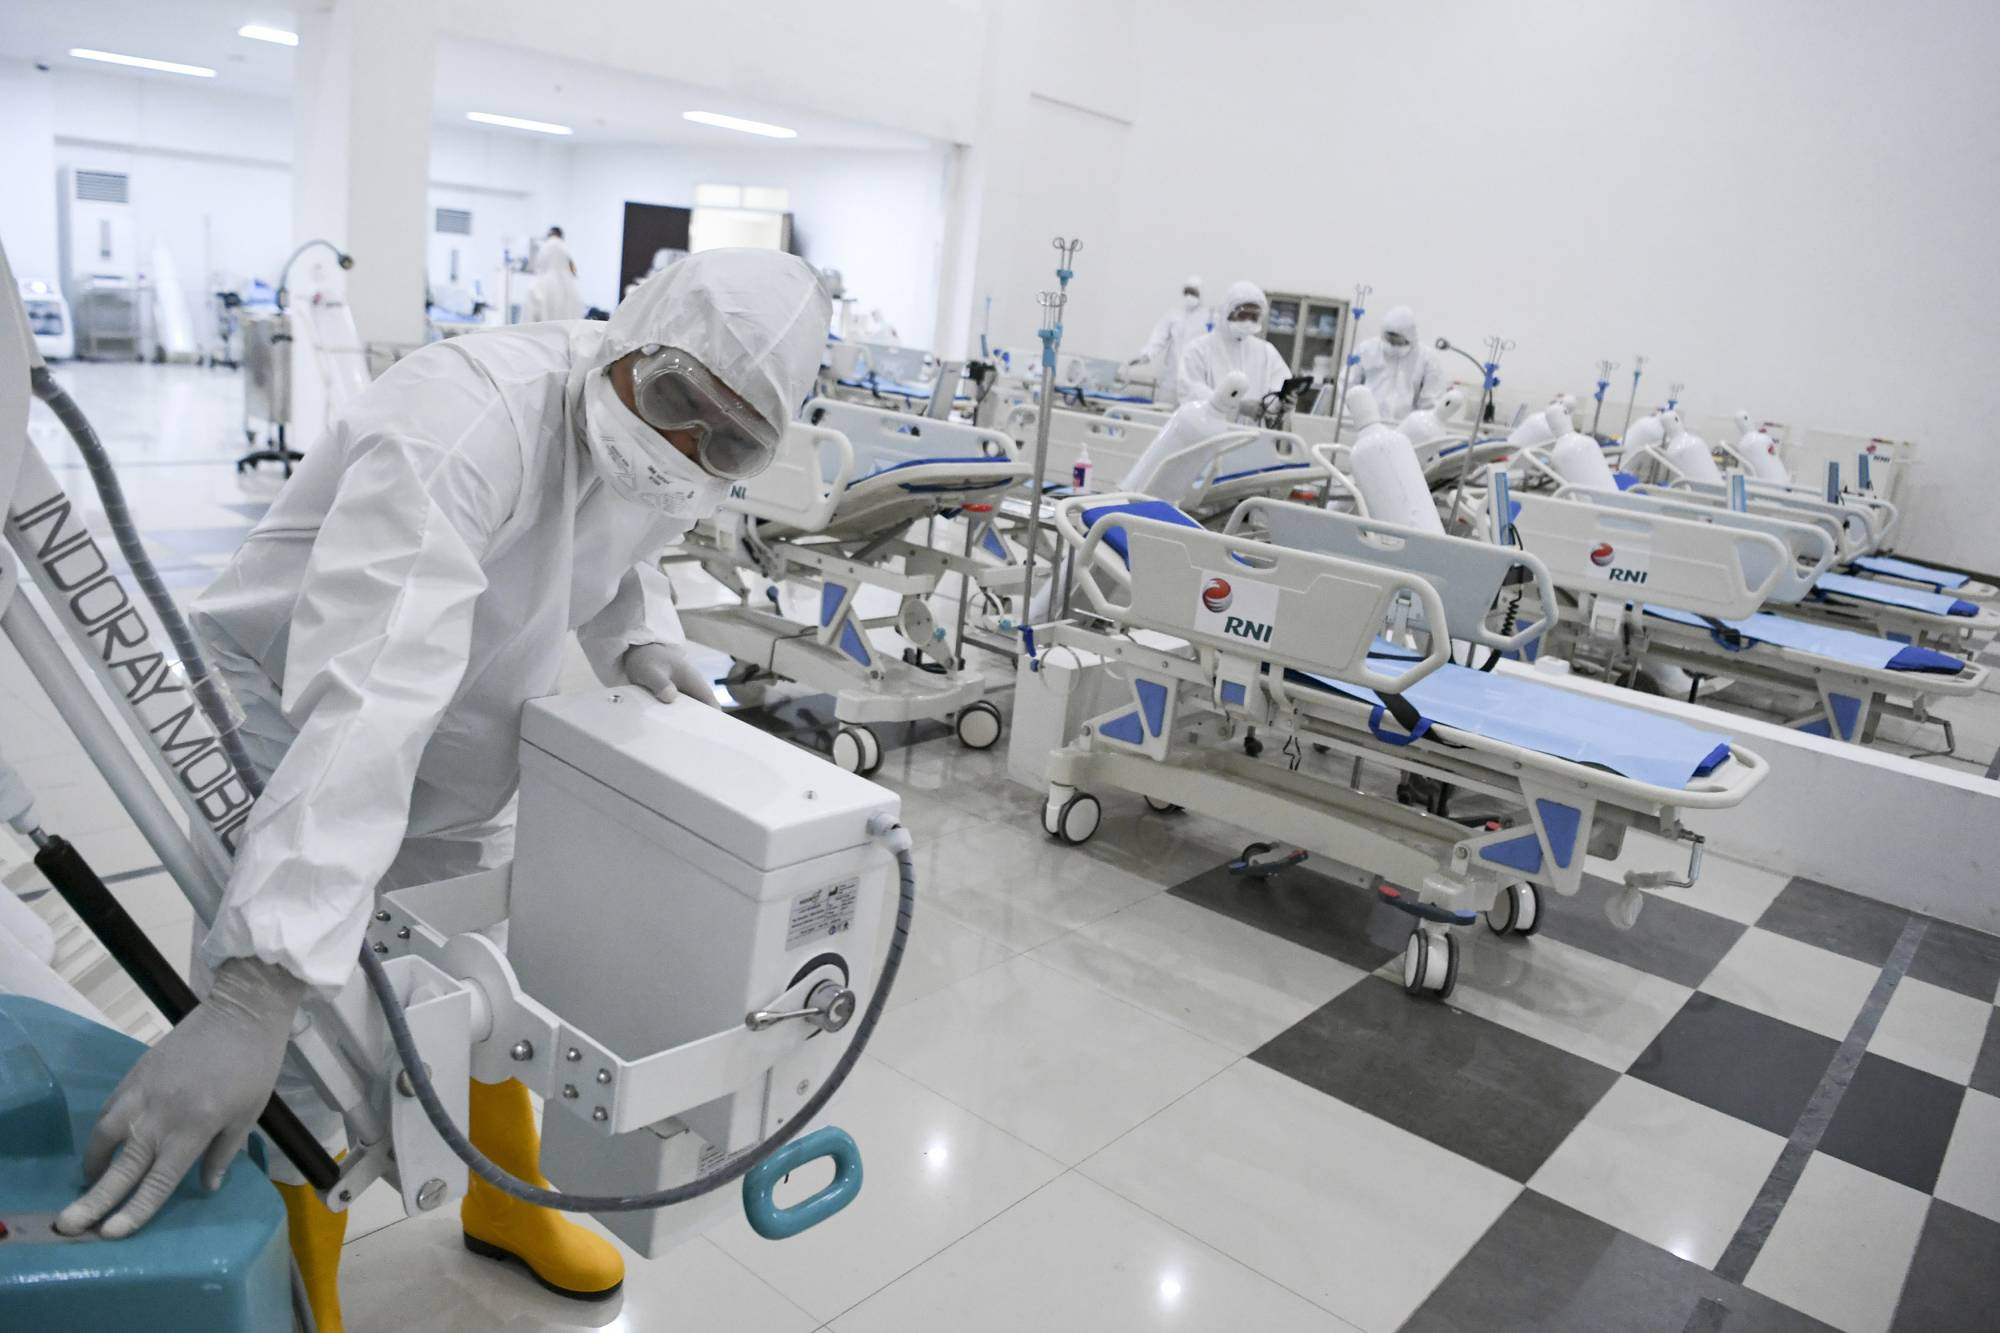 Staff inspect medical equipments at an emergency hospital set up amid the new coronavirus outbreak in Jakarta, Indonesia, Monday, March 23, 2020. Indonesia has changed towers built to house athletes in the 2018 Asian Games to emergency hospitals with a 3,000-bed capacity in the country's hard-hit capital, where new patients have surged in the past week. (Hafidz Mubarak A/Pool Photo via AP)